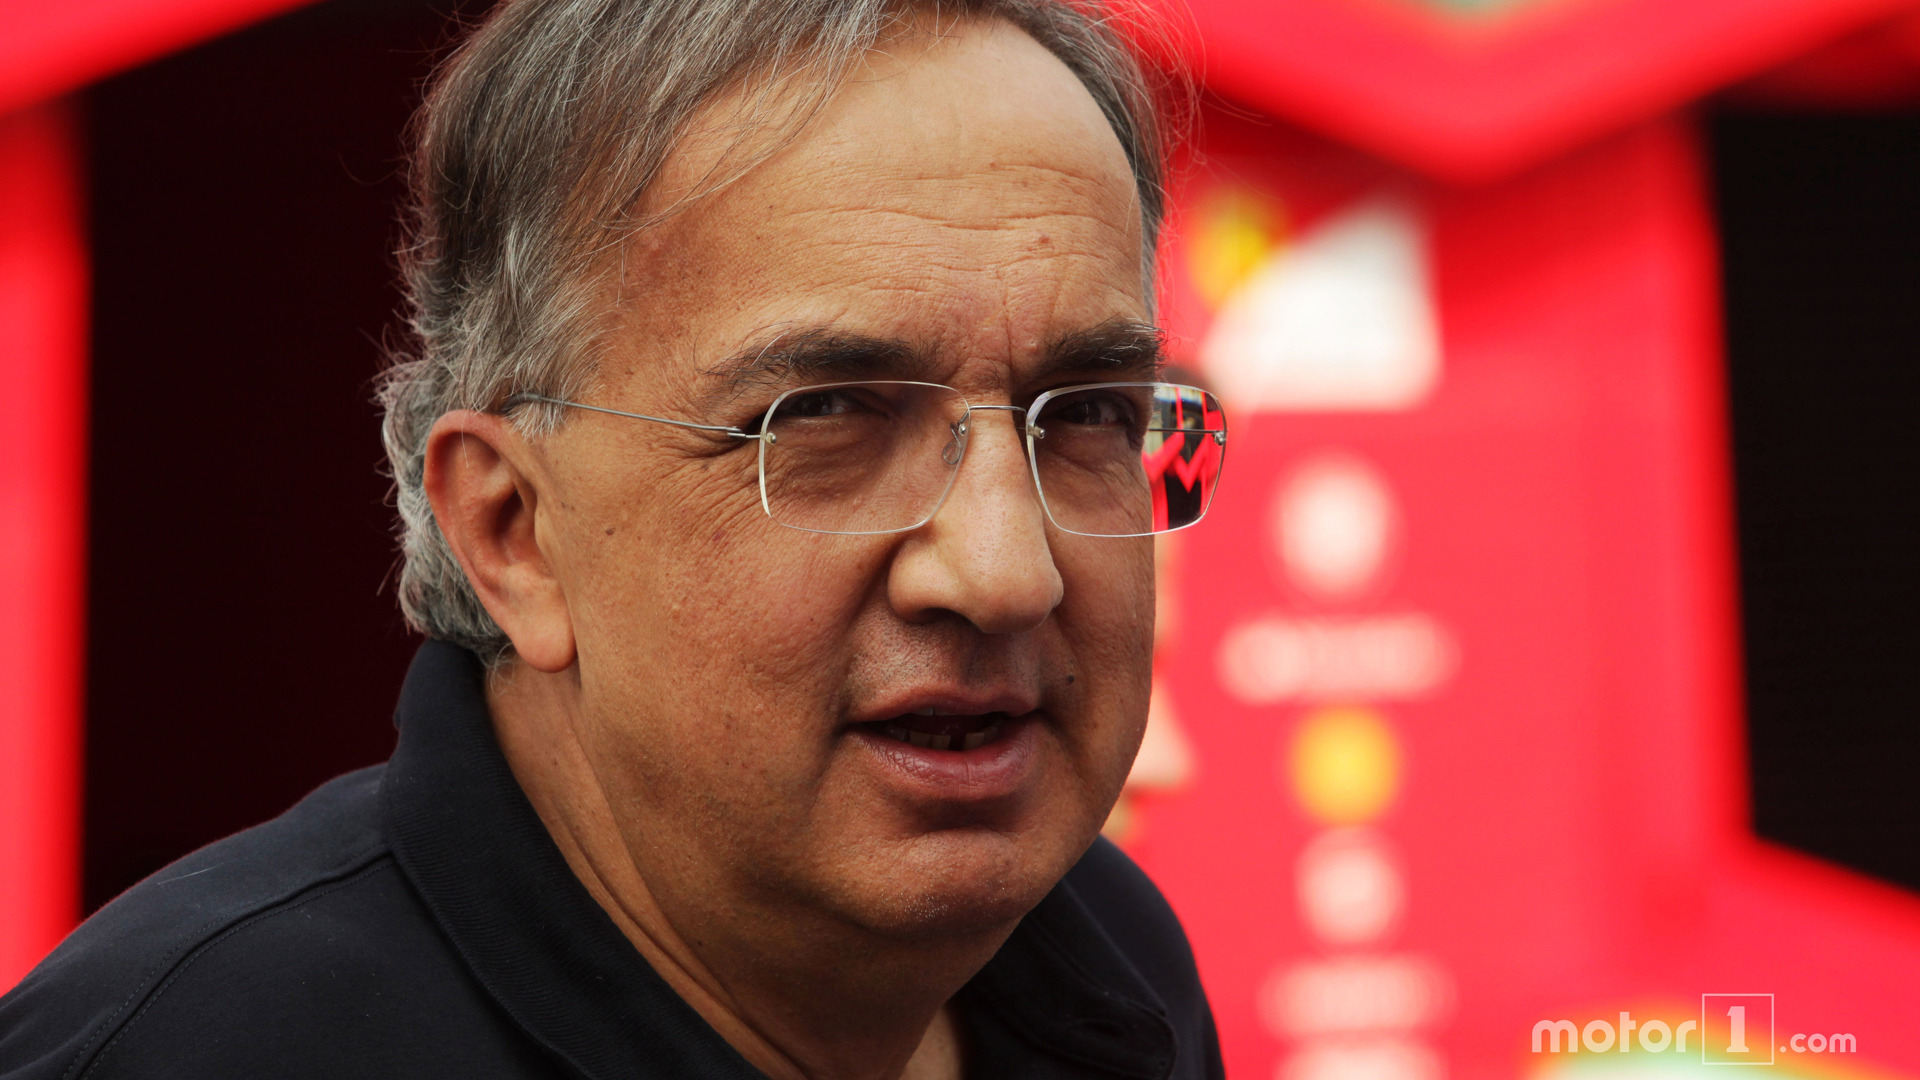 Marchionne Reportedly Life Support With No Hope Recovery